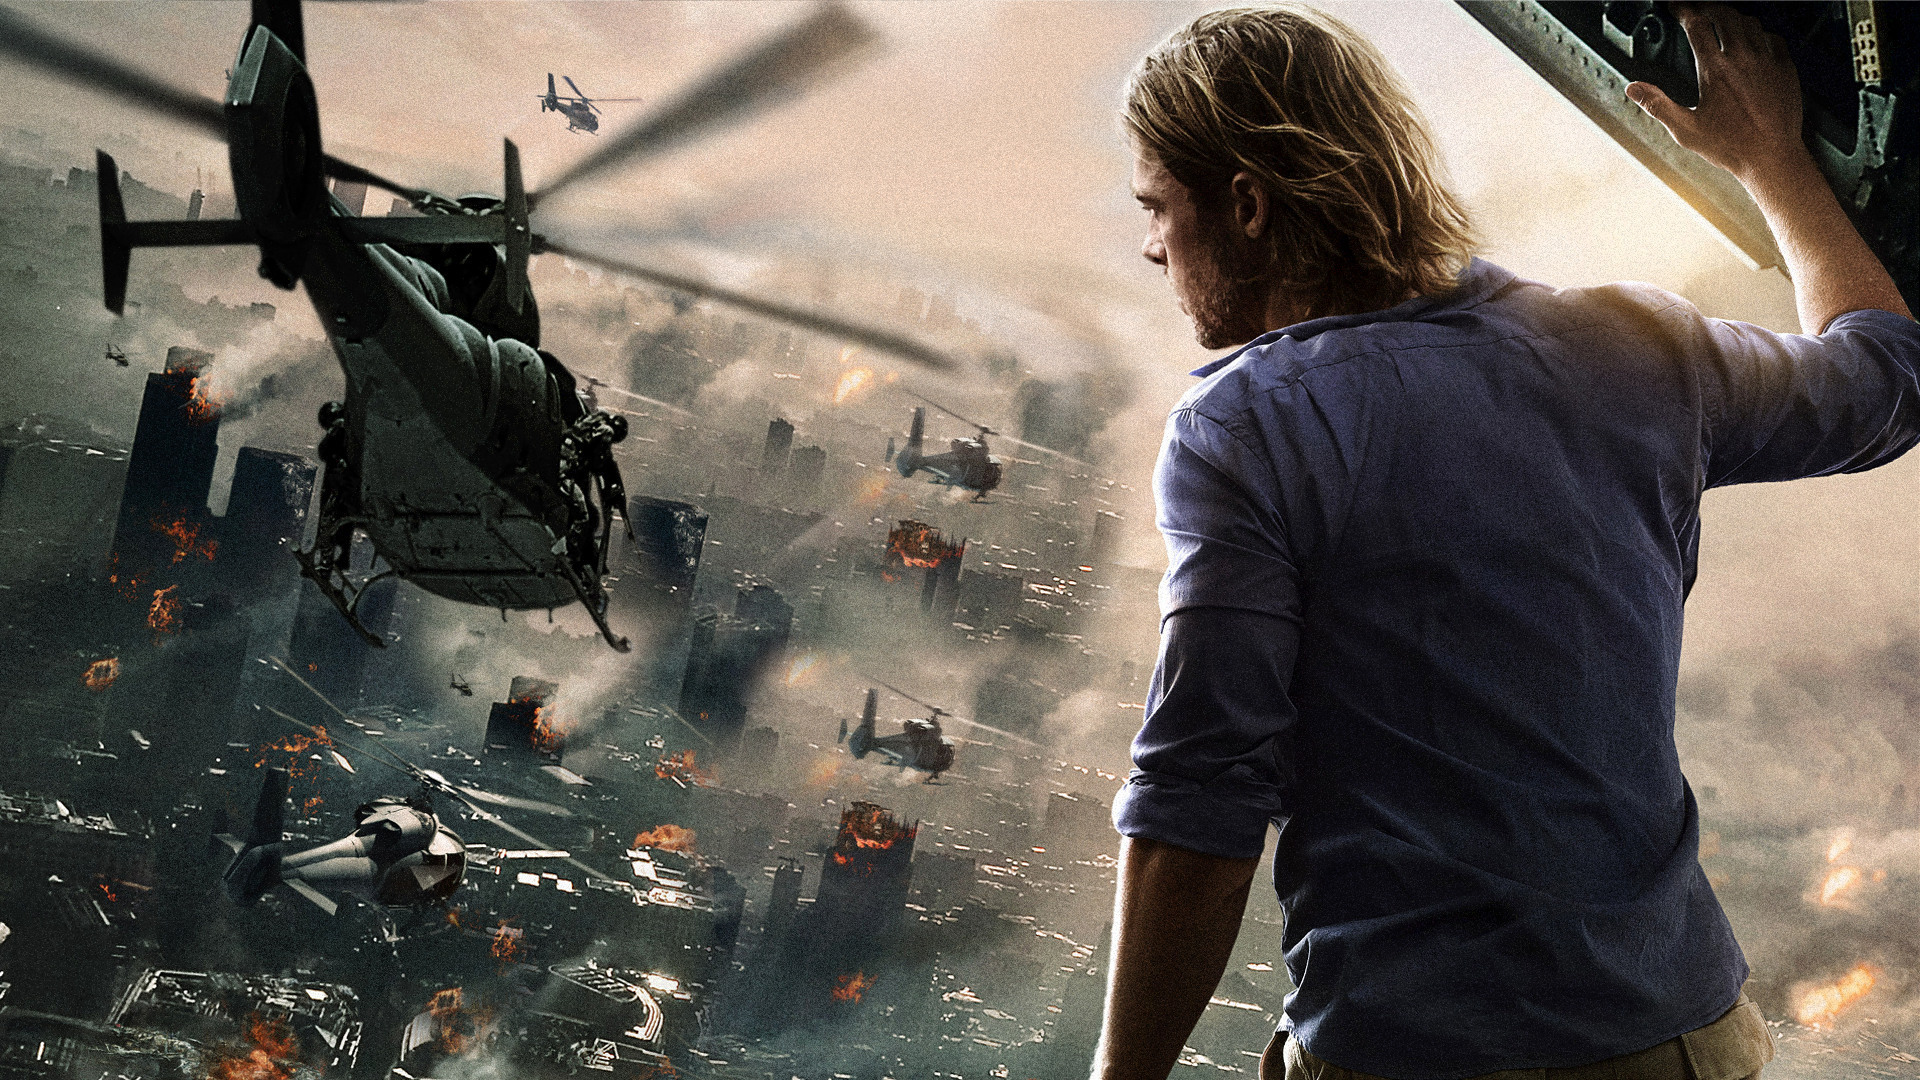 A natural hero -  World War Z 's Gerry, played by Brad Pitt.